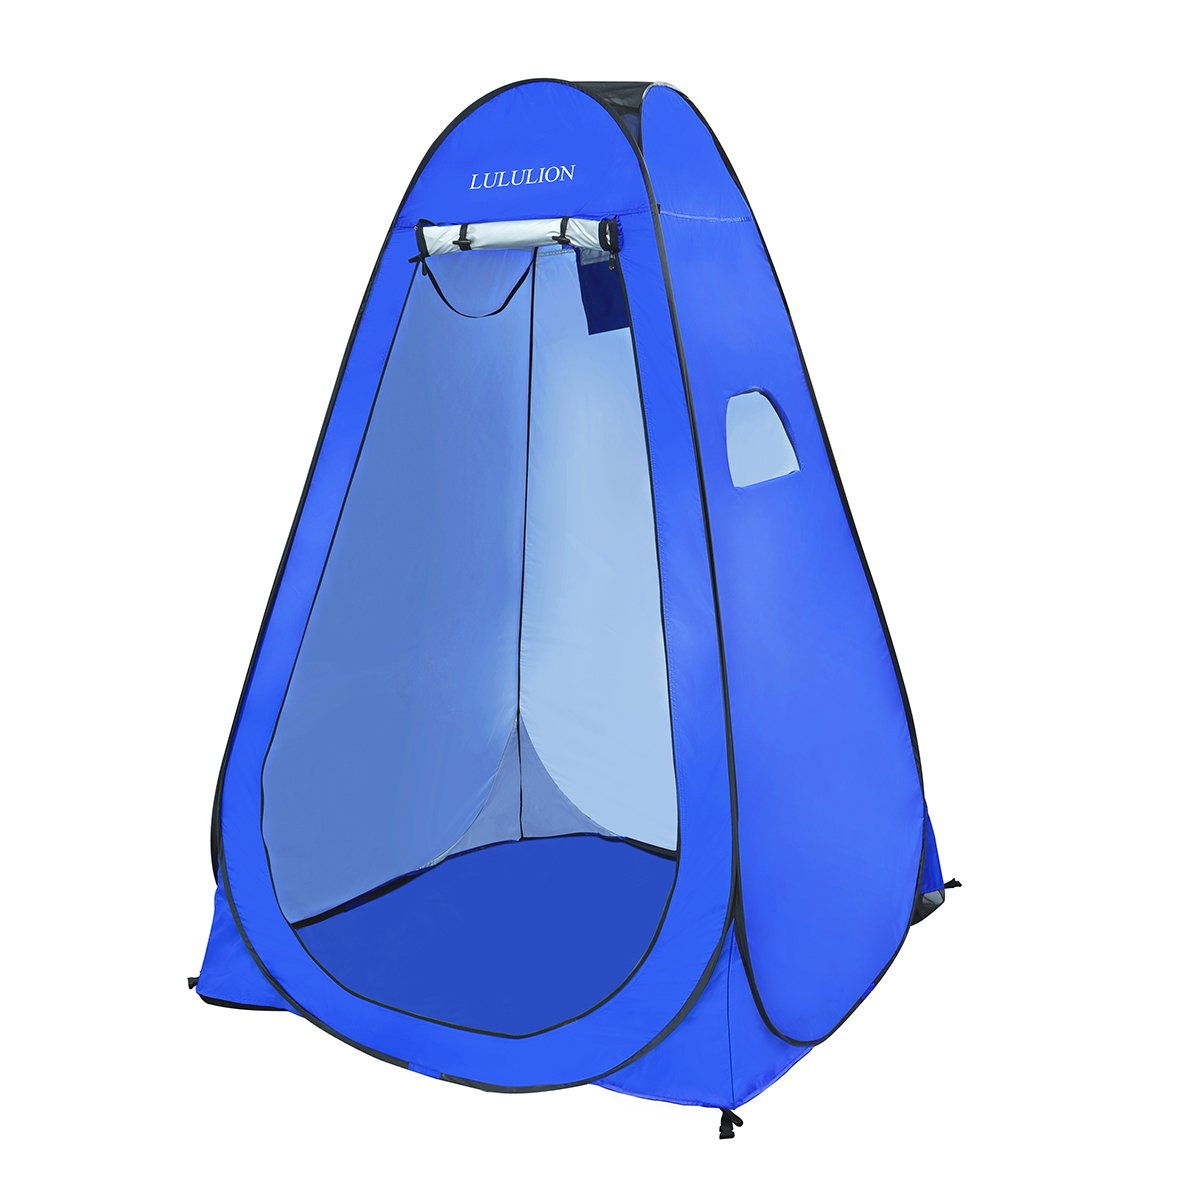 iBaseToy Anti-Peeping Pop up Changing Room, Camping Beach Toilet Shower Tent Portable Outdoor Privacy Shelter Dressing Room with Carrying Bag, 6.25Ft